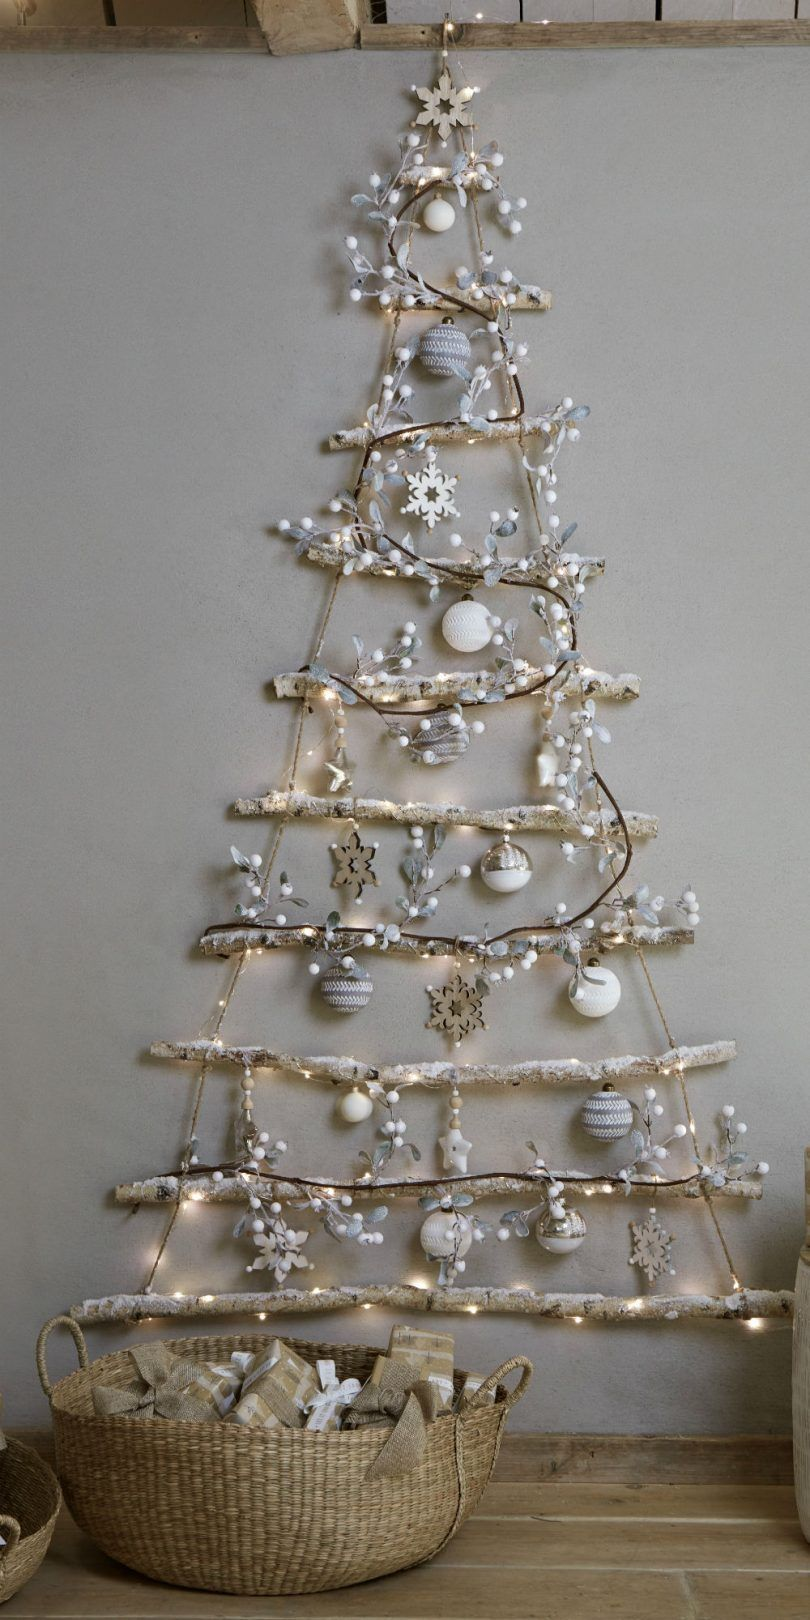 We're totally hung up on this new alternative Christmas tree trend. If your home is short on space during the festive season, then this Christmas tree could be just the way to go. It's a Christmas tree, but not as we know it... #christmastreetrends #modernchristmasdecorating #christmastrends2018 #christmasdecorations